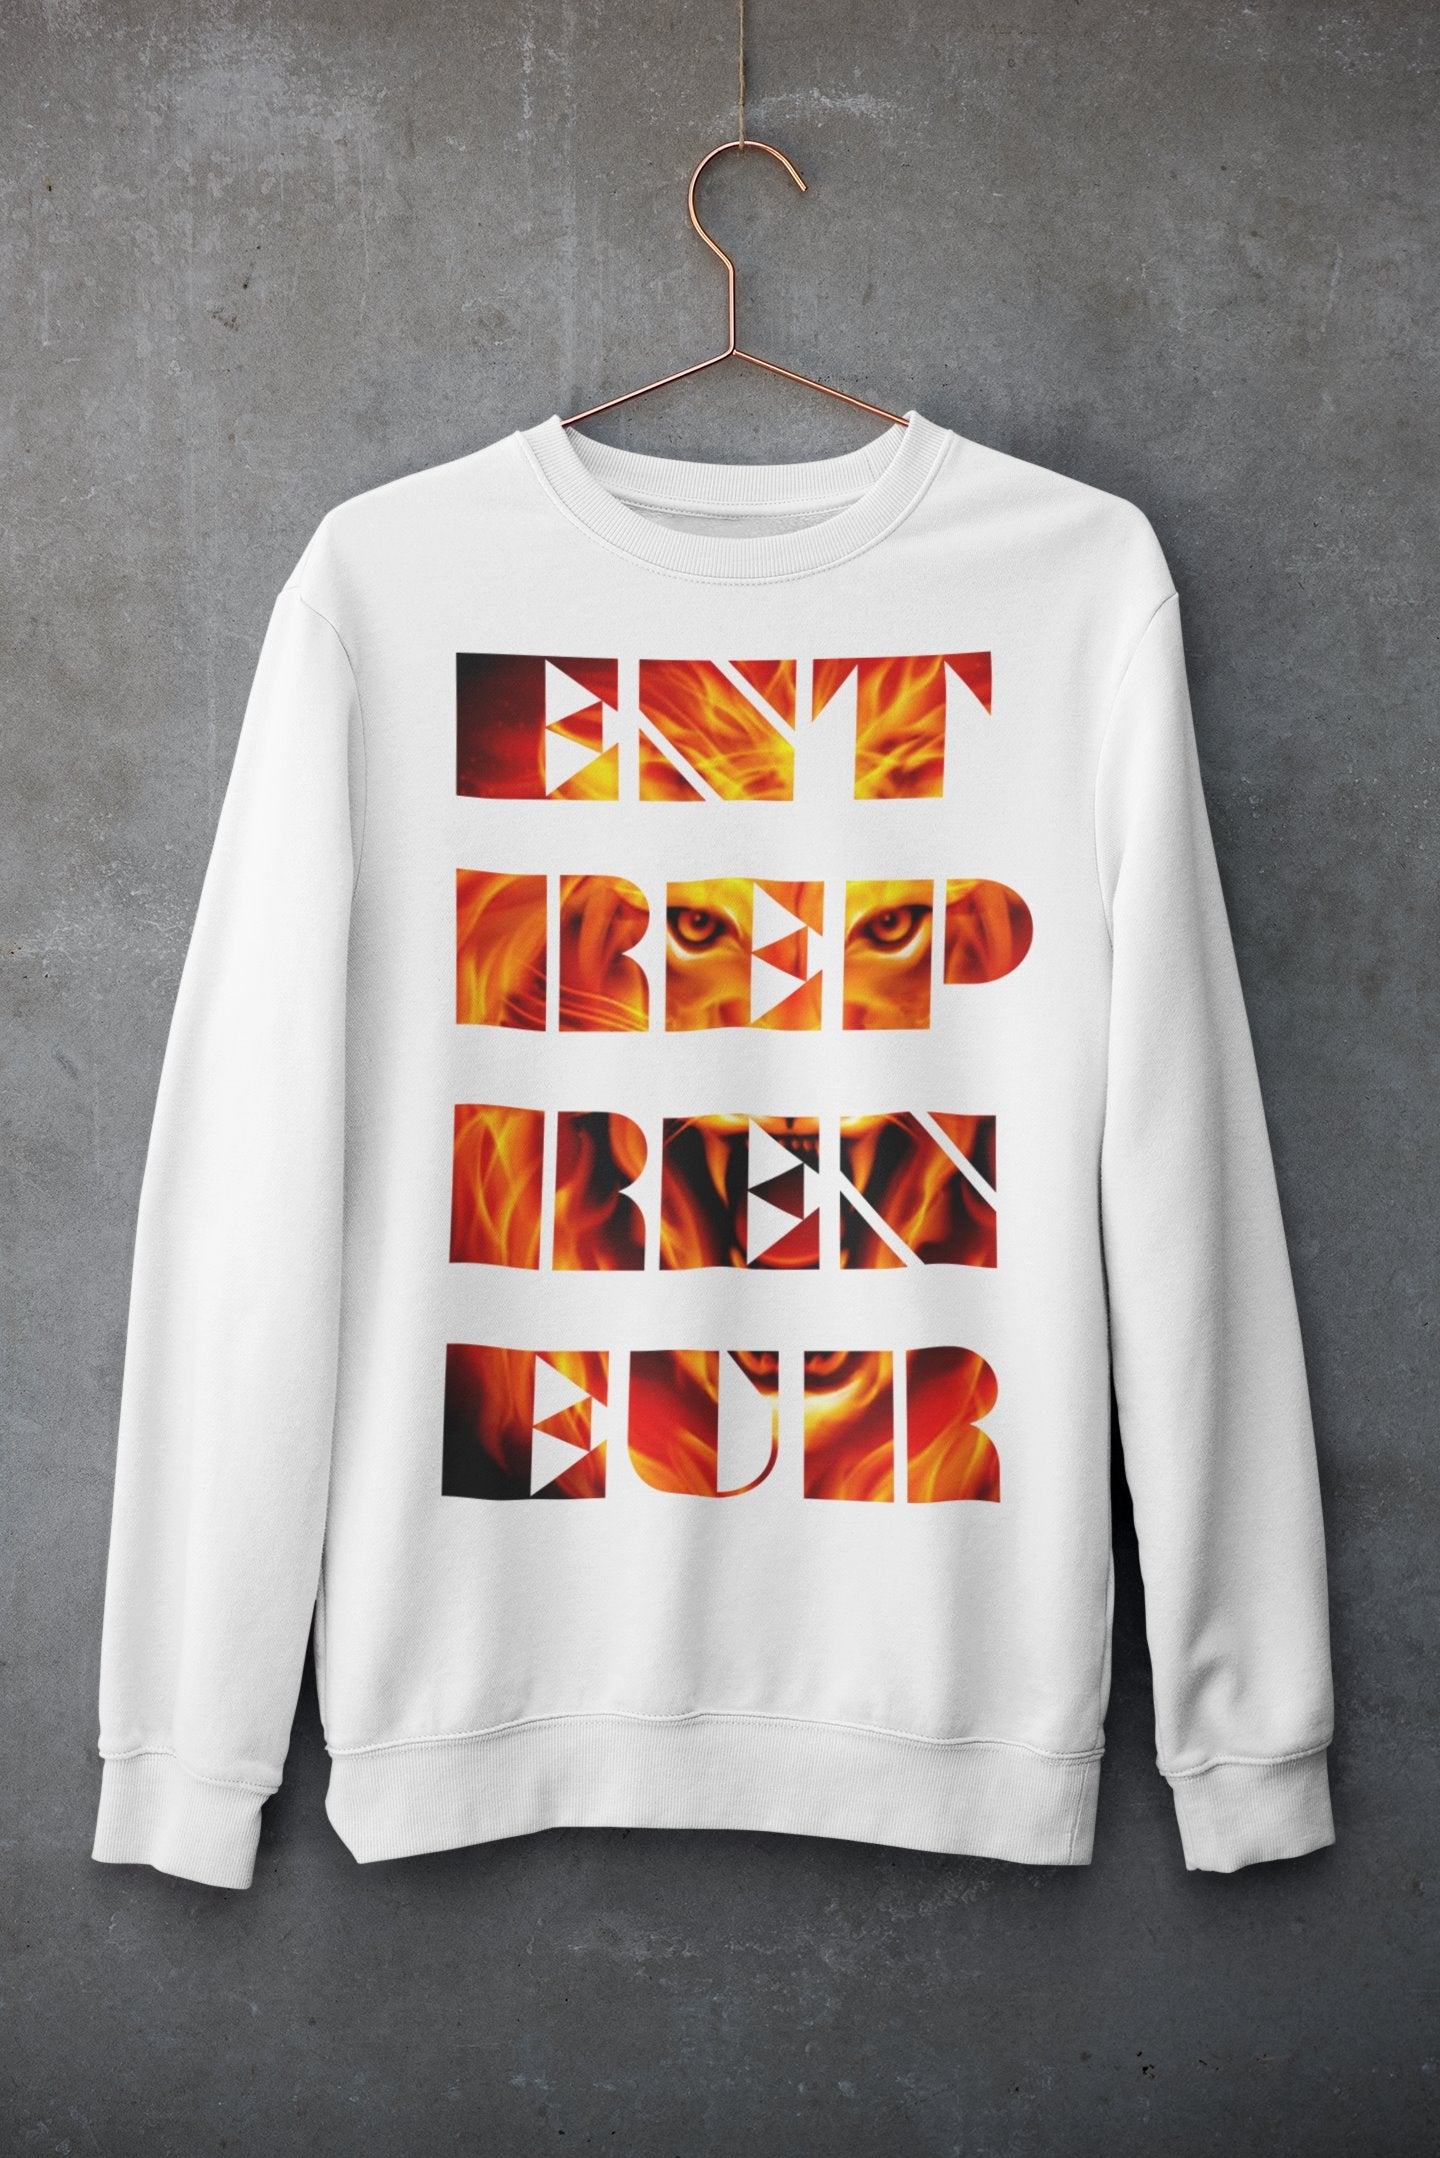 "Mens Sweatshirt ""Entrepreneur"" WhiteS - Mperior: The Store For Entrepreneurs, Hustlers and Achievers"